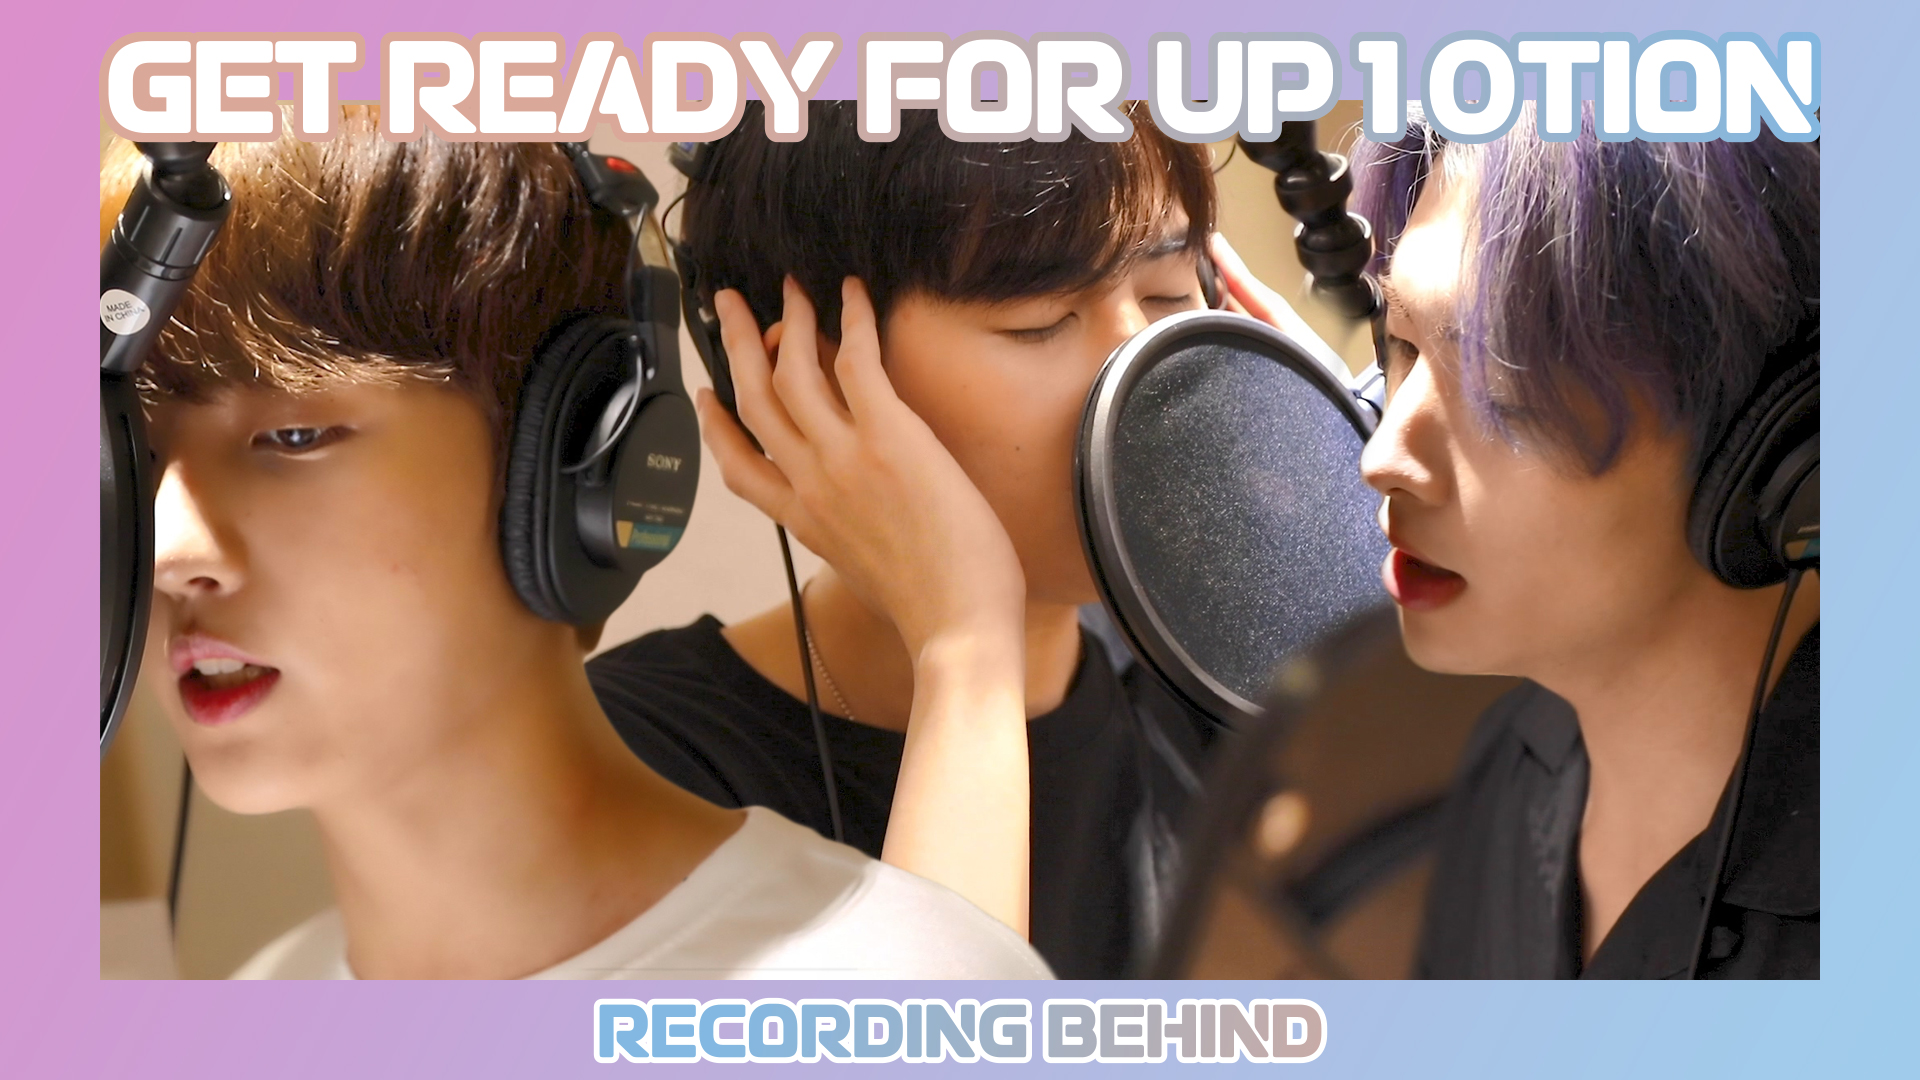 Get ready for UP10TION - RECORDING BEHIND